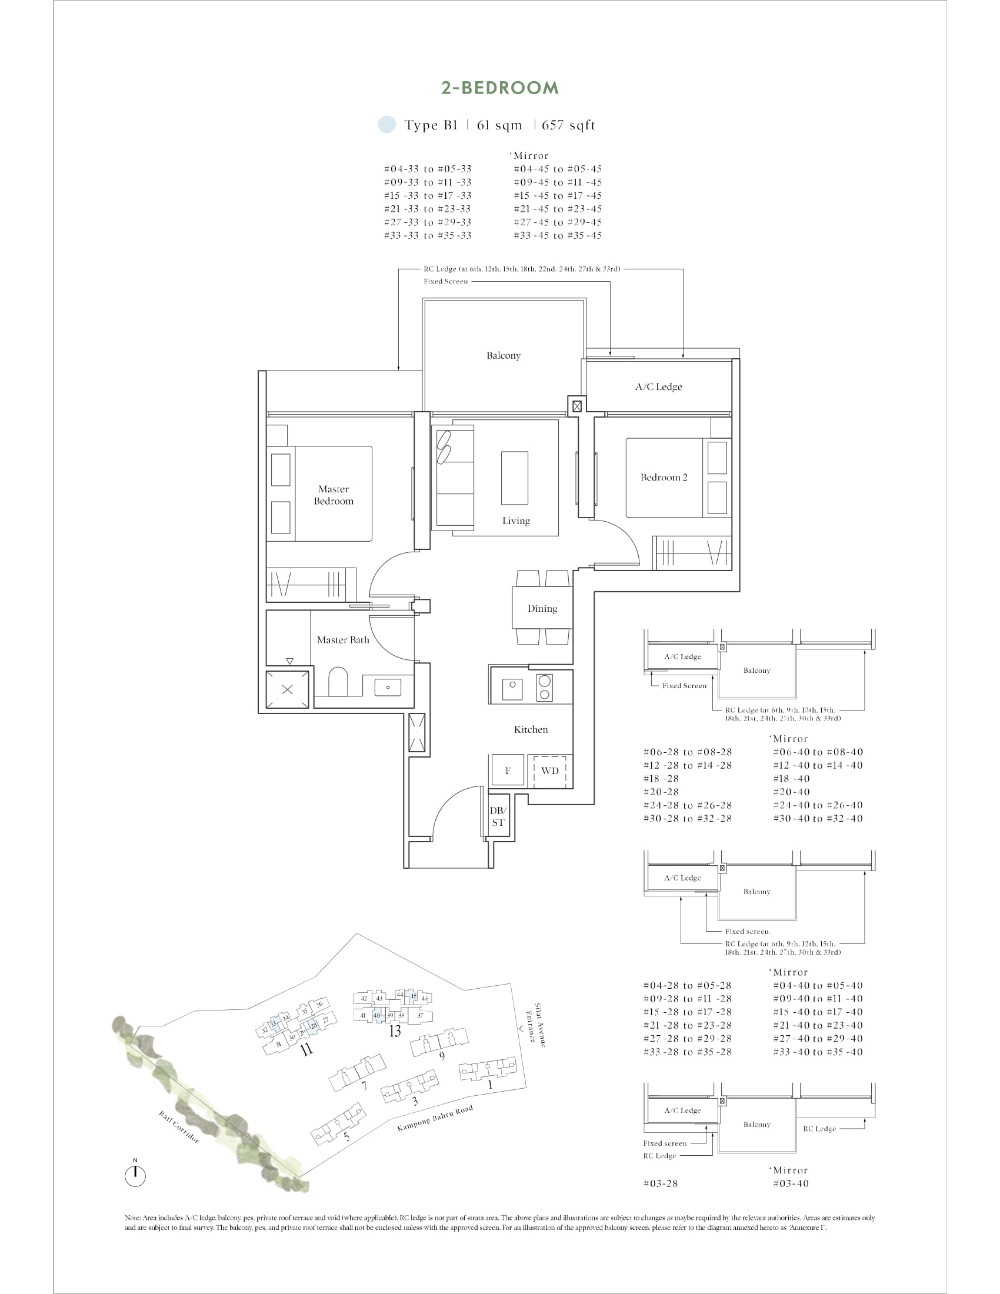 Site And Floor Plan Avenue South Residence Official Website Bernard Koh Sustainable Building Design Cluster House Residences